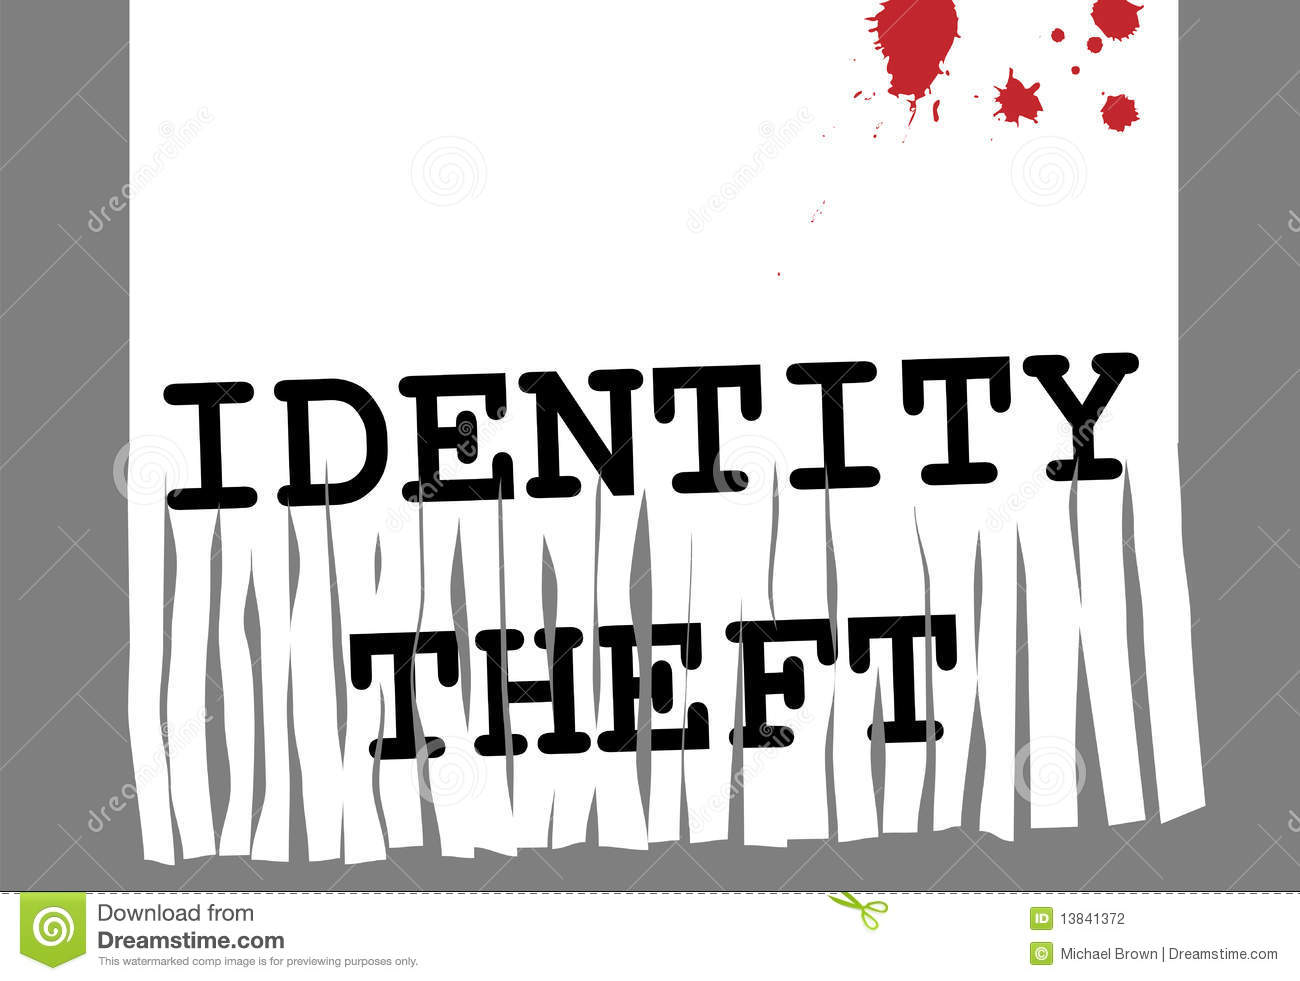 identity paper research theft Read identity theft essays and research papers view and download complete sample identity theft essays, instructions, works cited pages, and more.